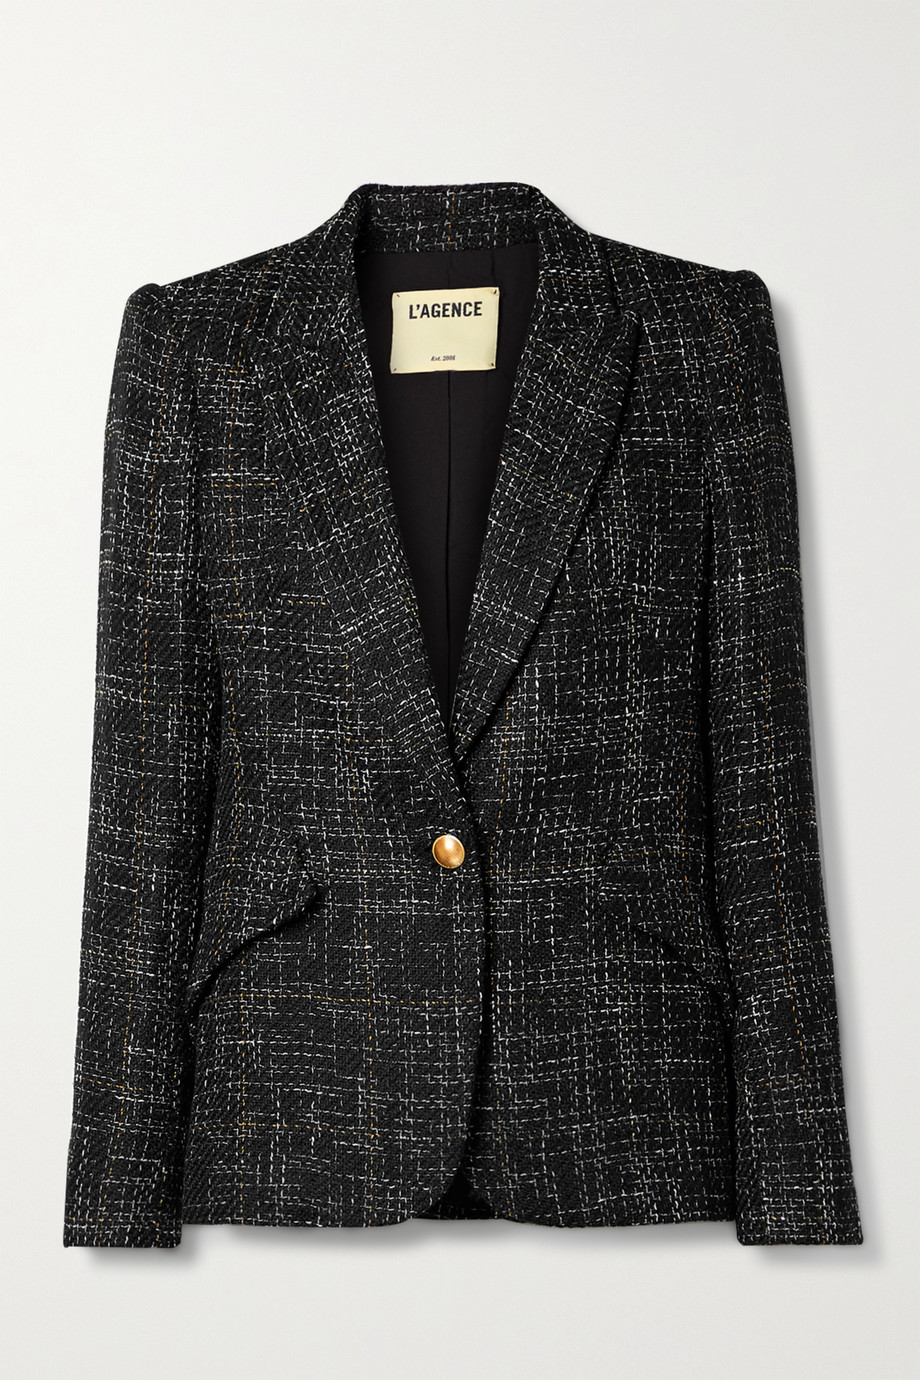 L'AGENCE Chamberlain checked tweed blazer